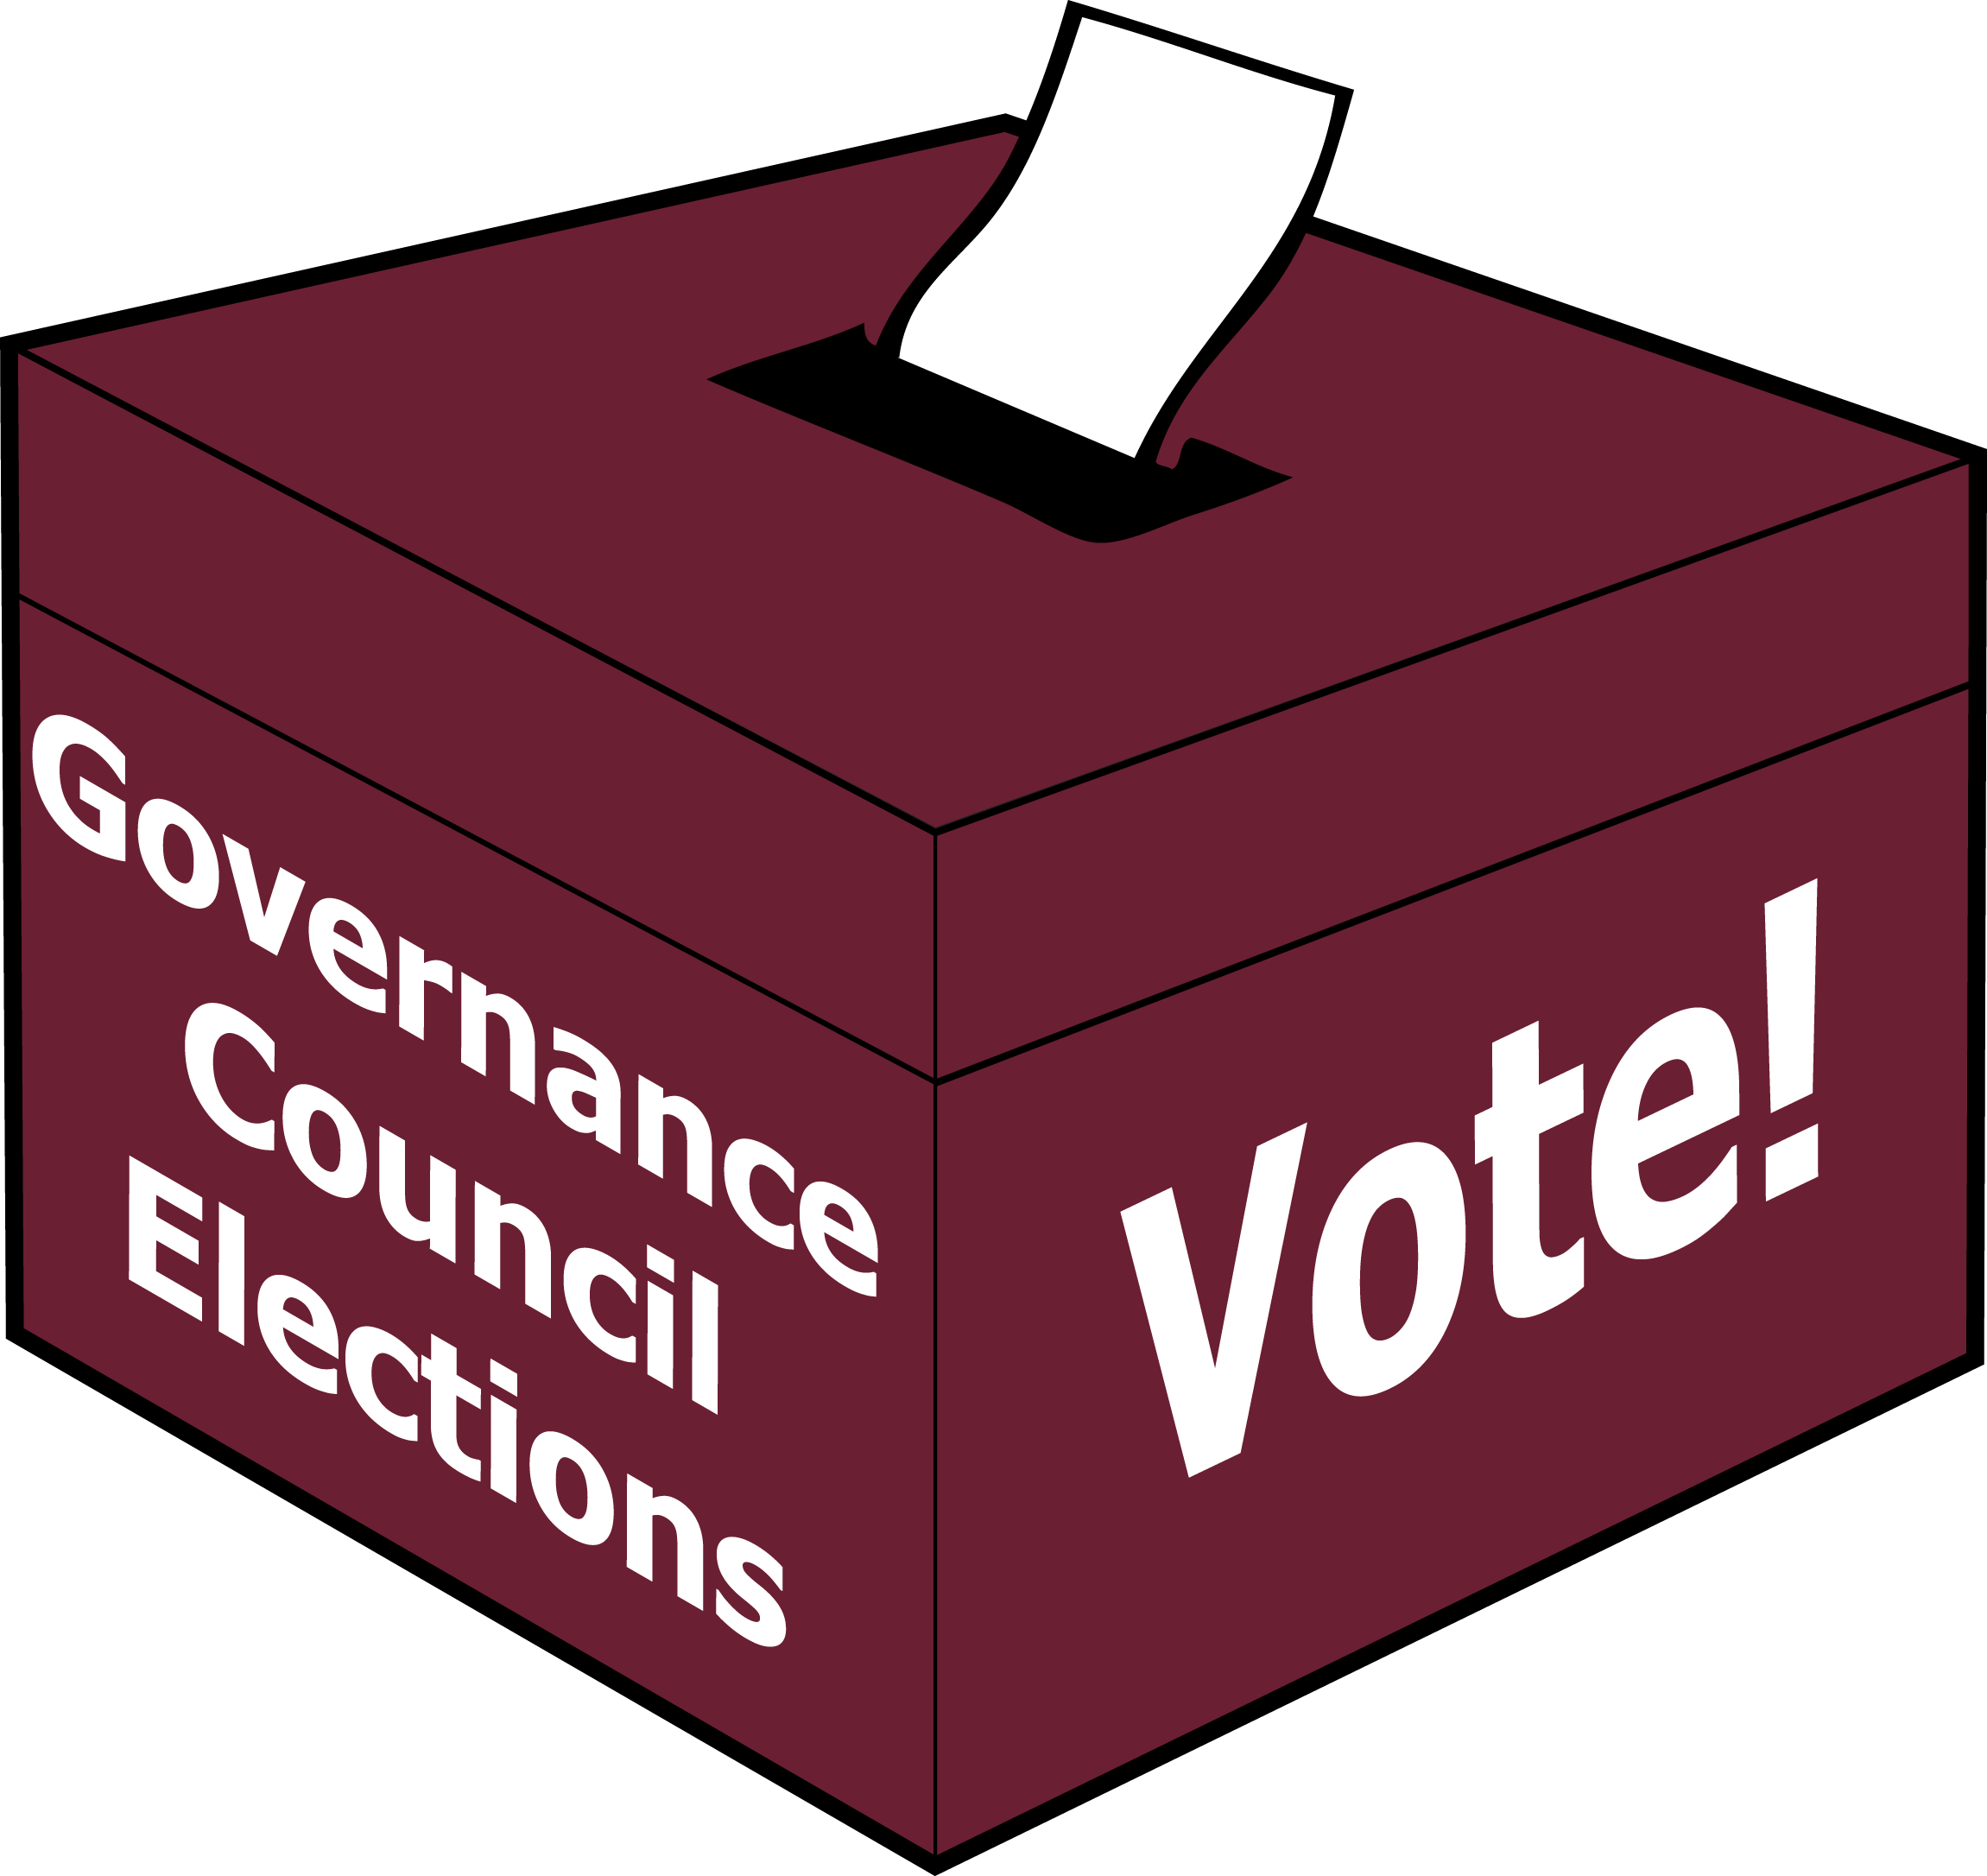 Images all documents ballot. Voting clipart voting box